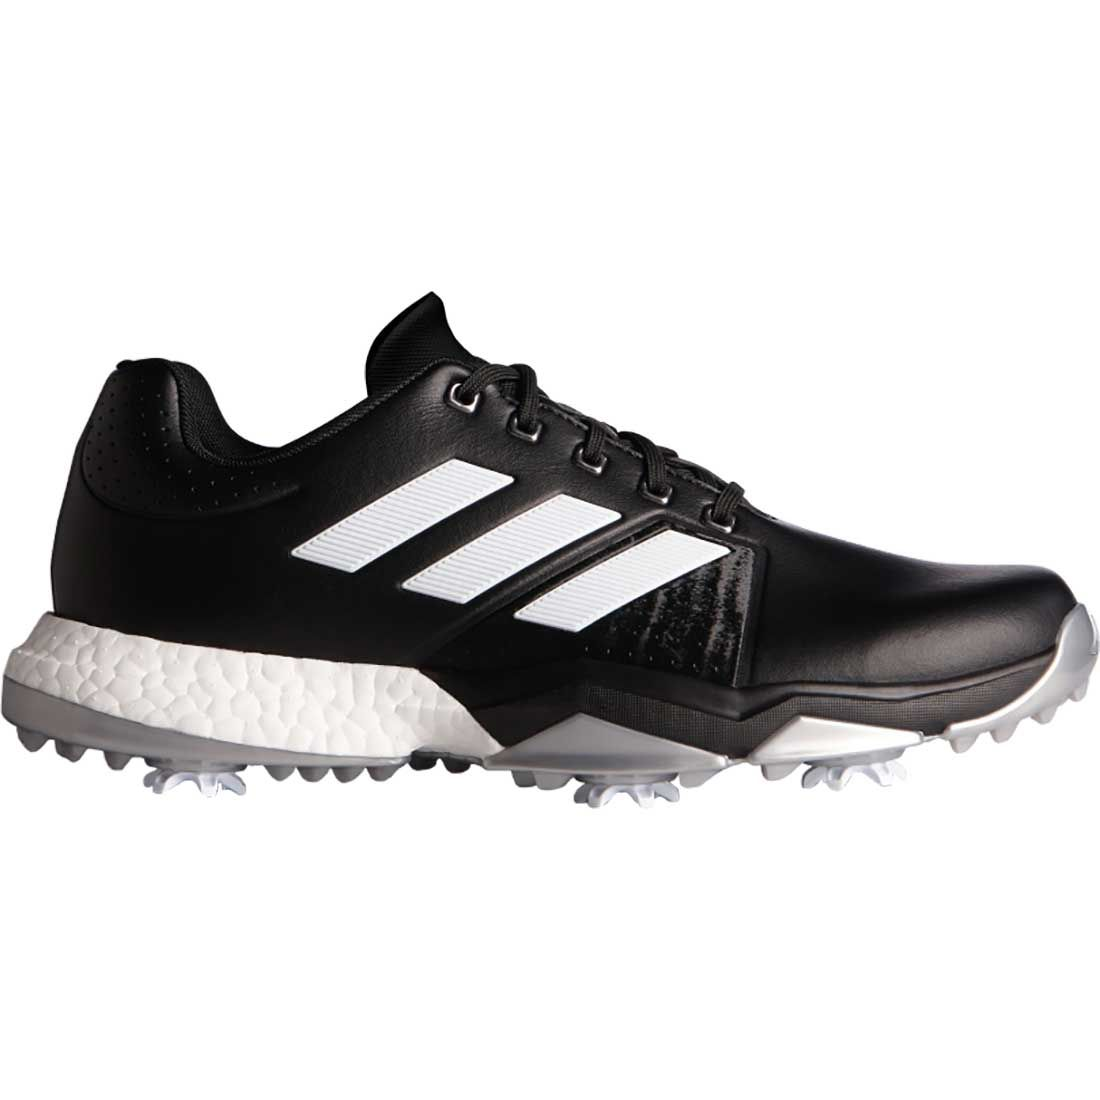 Buy Adidas AdiPower Boost 3 Golf Shoes Black/White/Silver | Golf ...